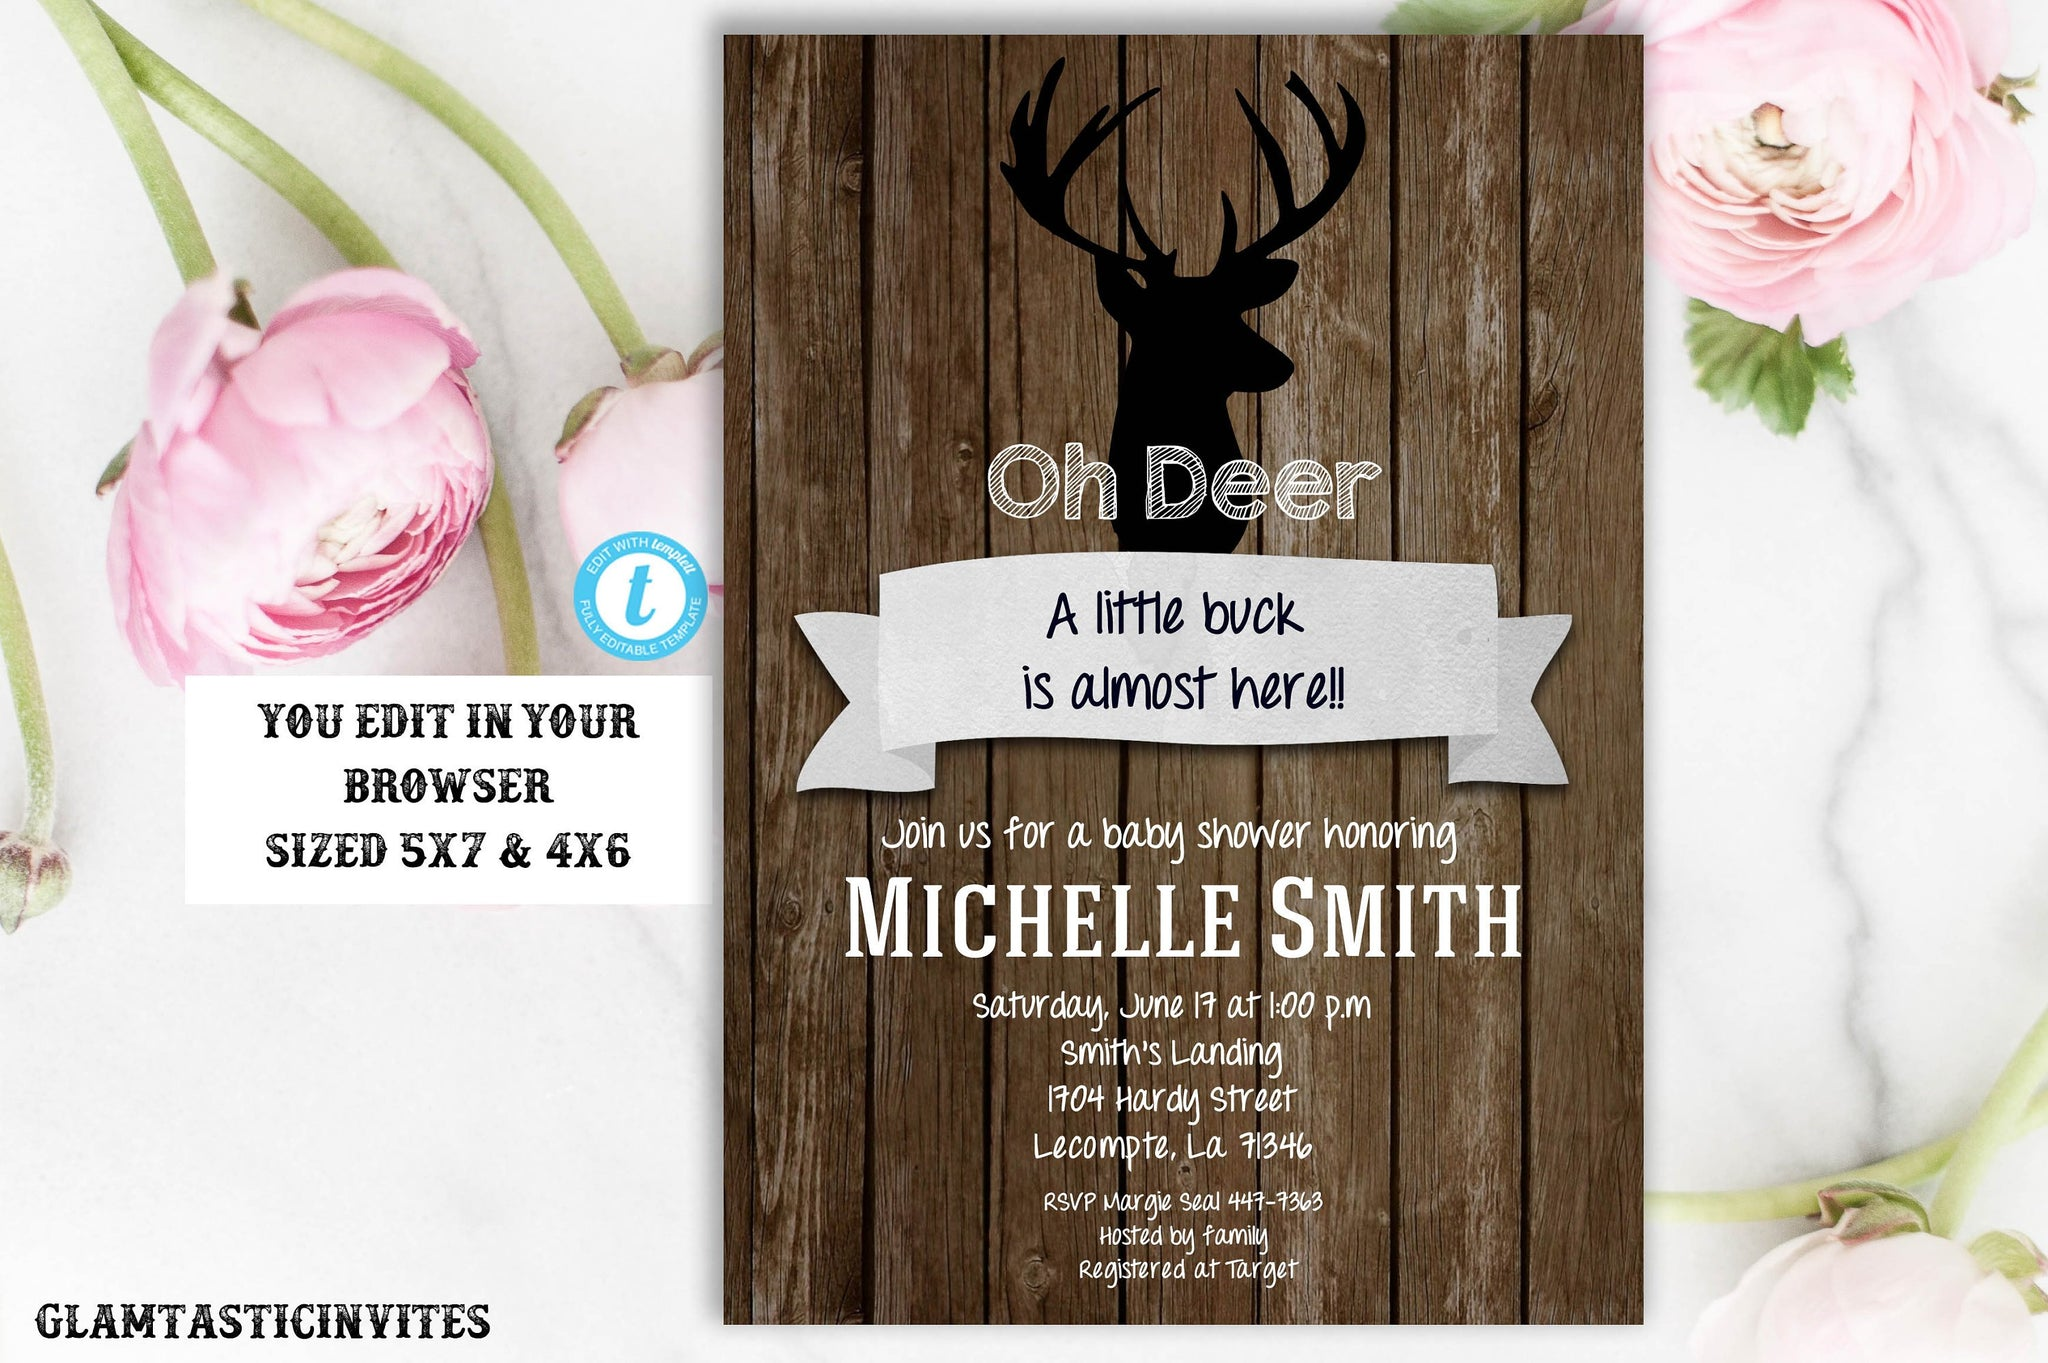 Oh Deer Baby Shower Invitation Template, Deer Baby Shower Invitation, Rustic Baby Shower Invitation, Boy Baby Shower, Edit, INSTANT DOWNLOAD